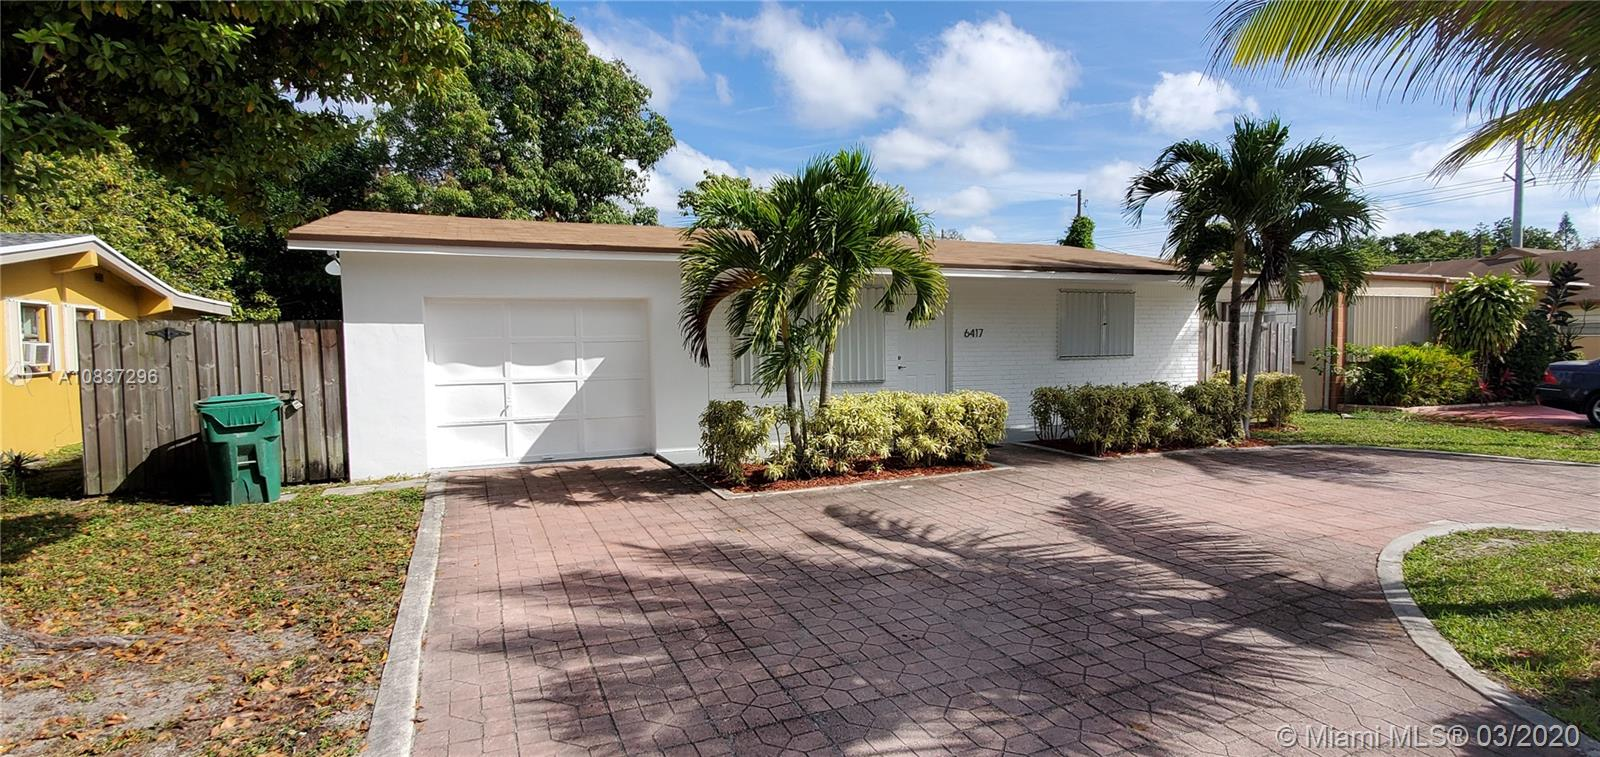 6417 SW 20th Ct  For Sale A10837296, FL